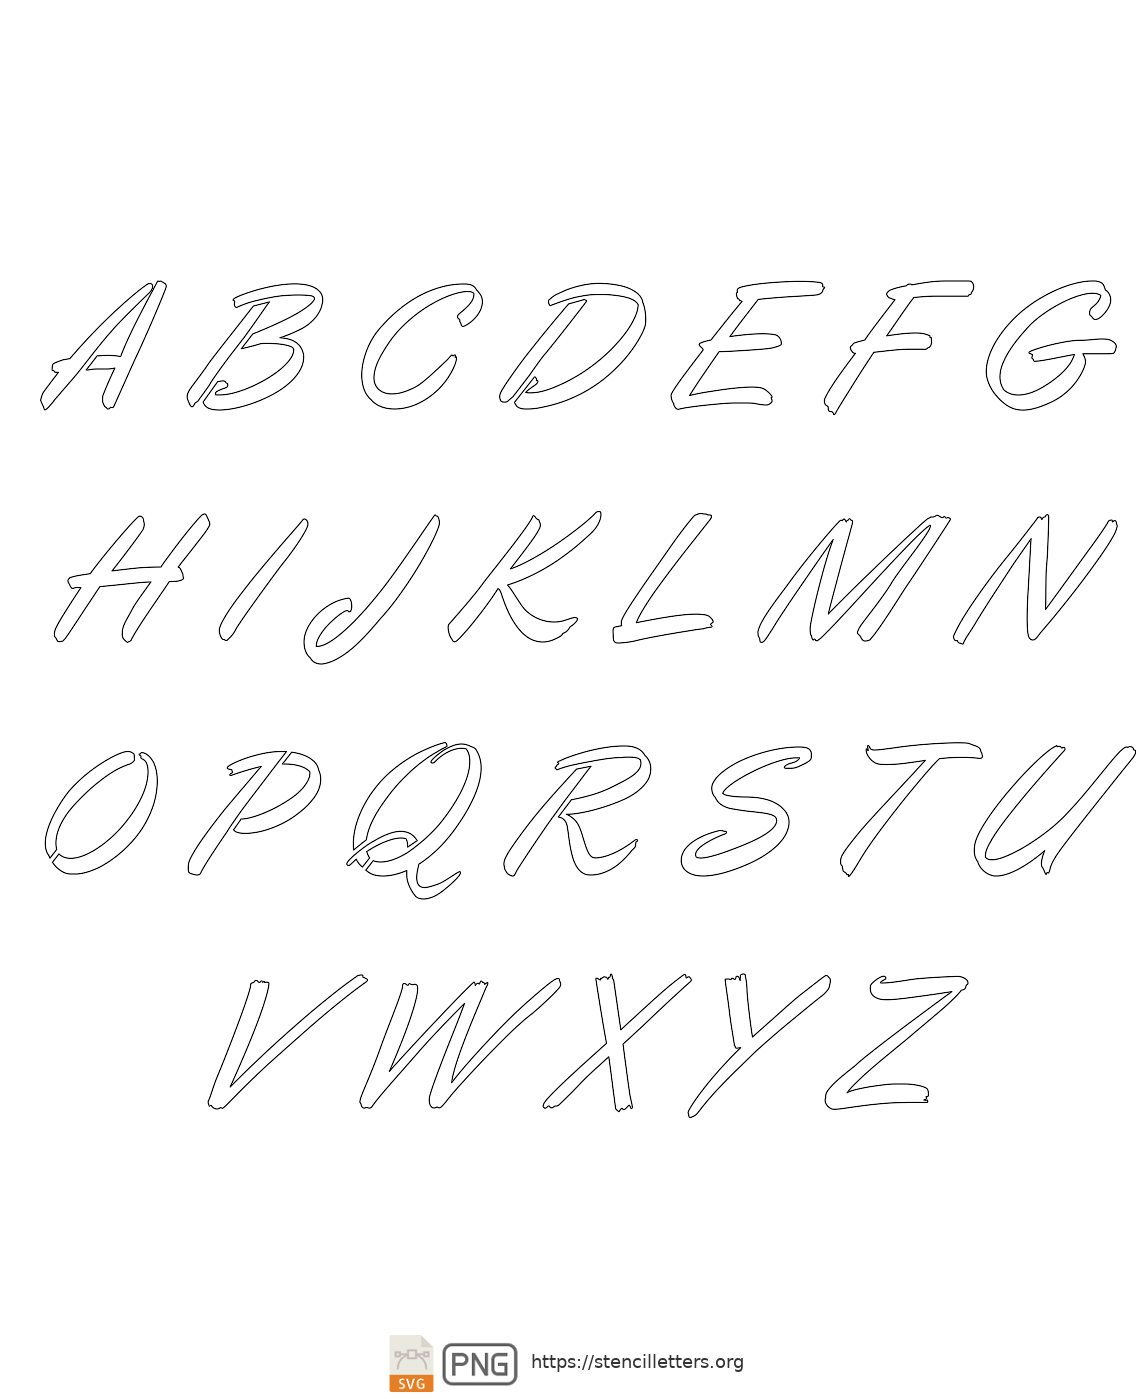 Italic Calligraphy uppercase letter stencils